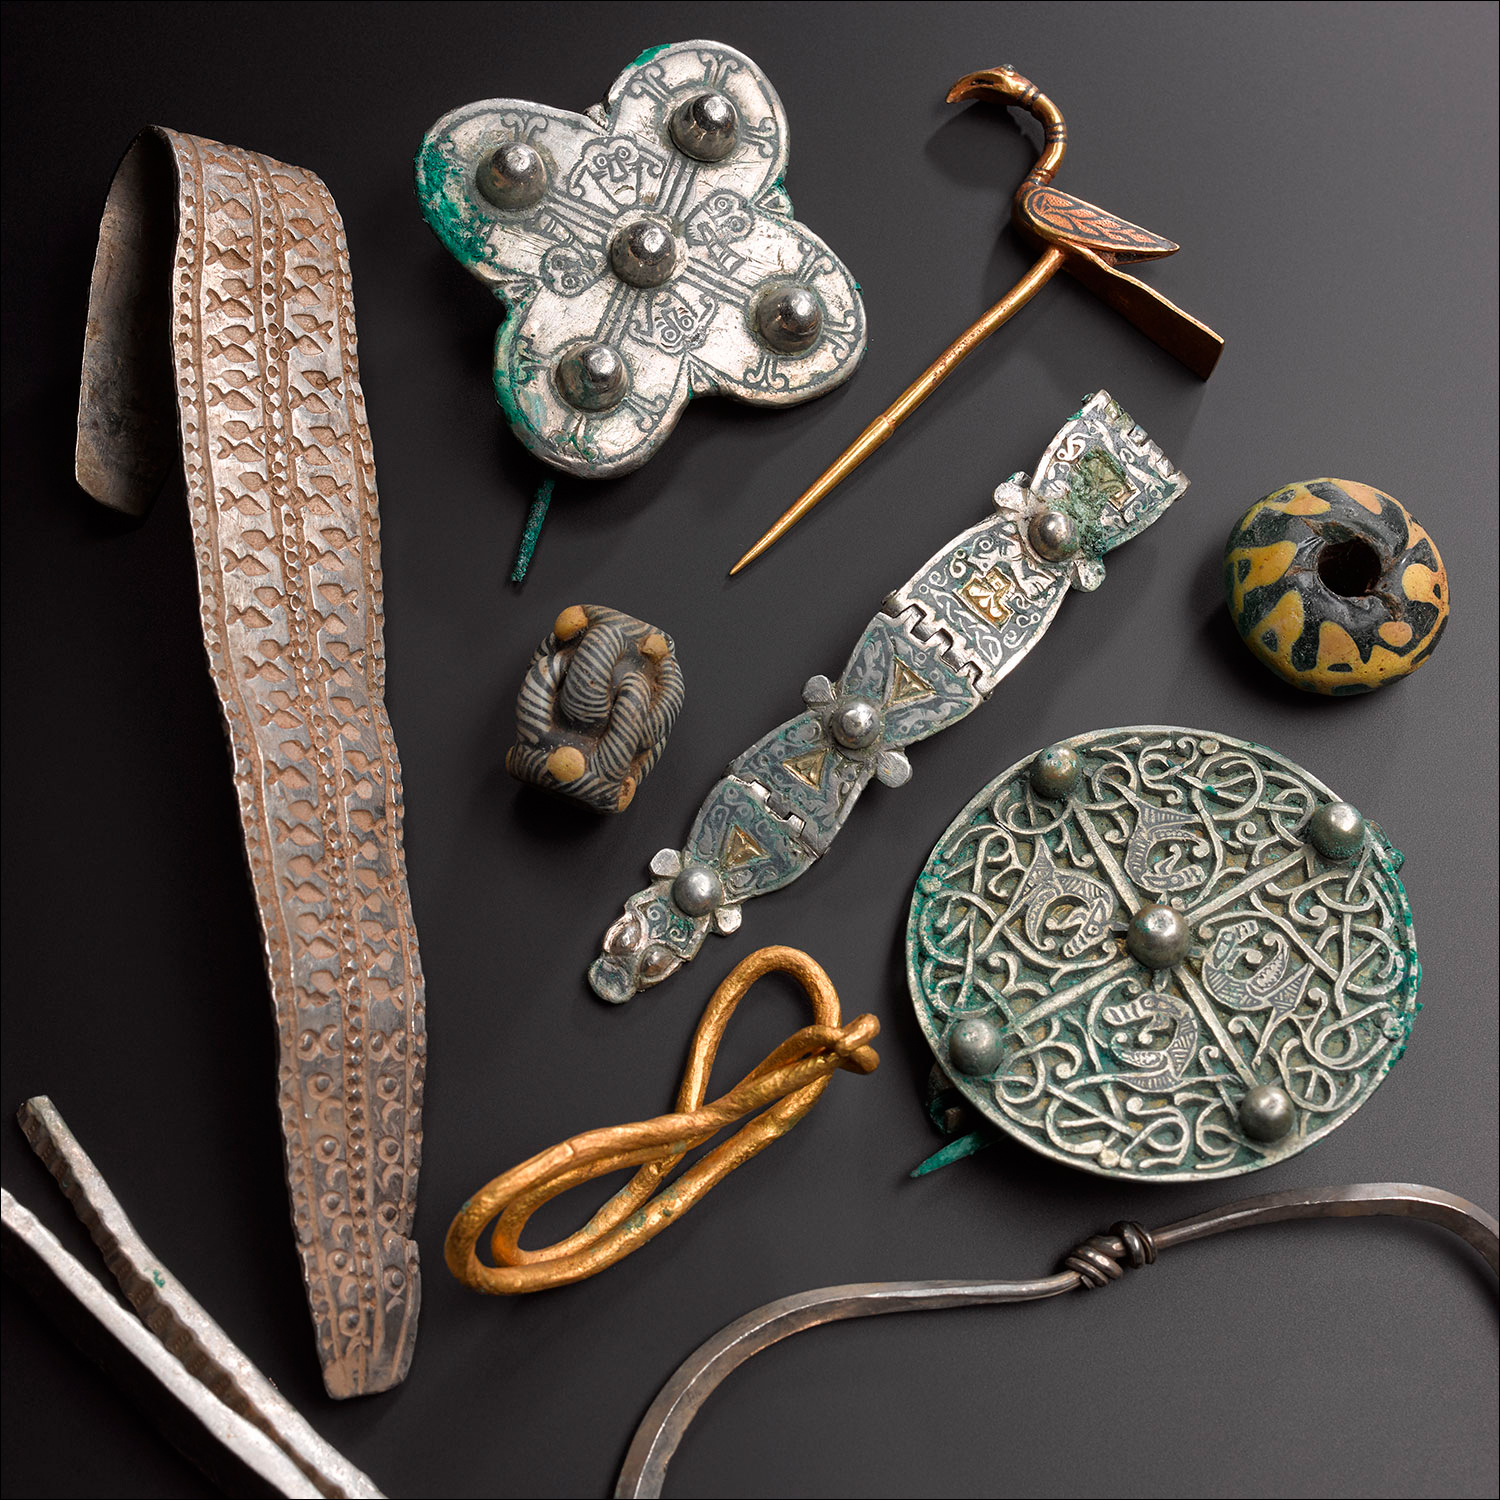 The Galloway Hoard